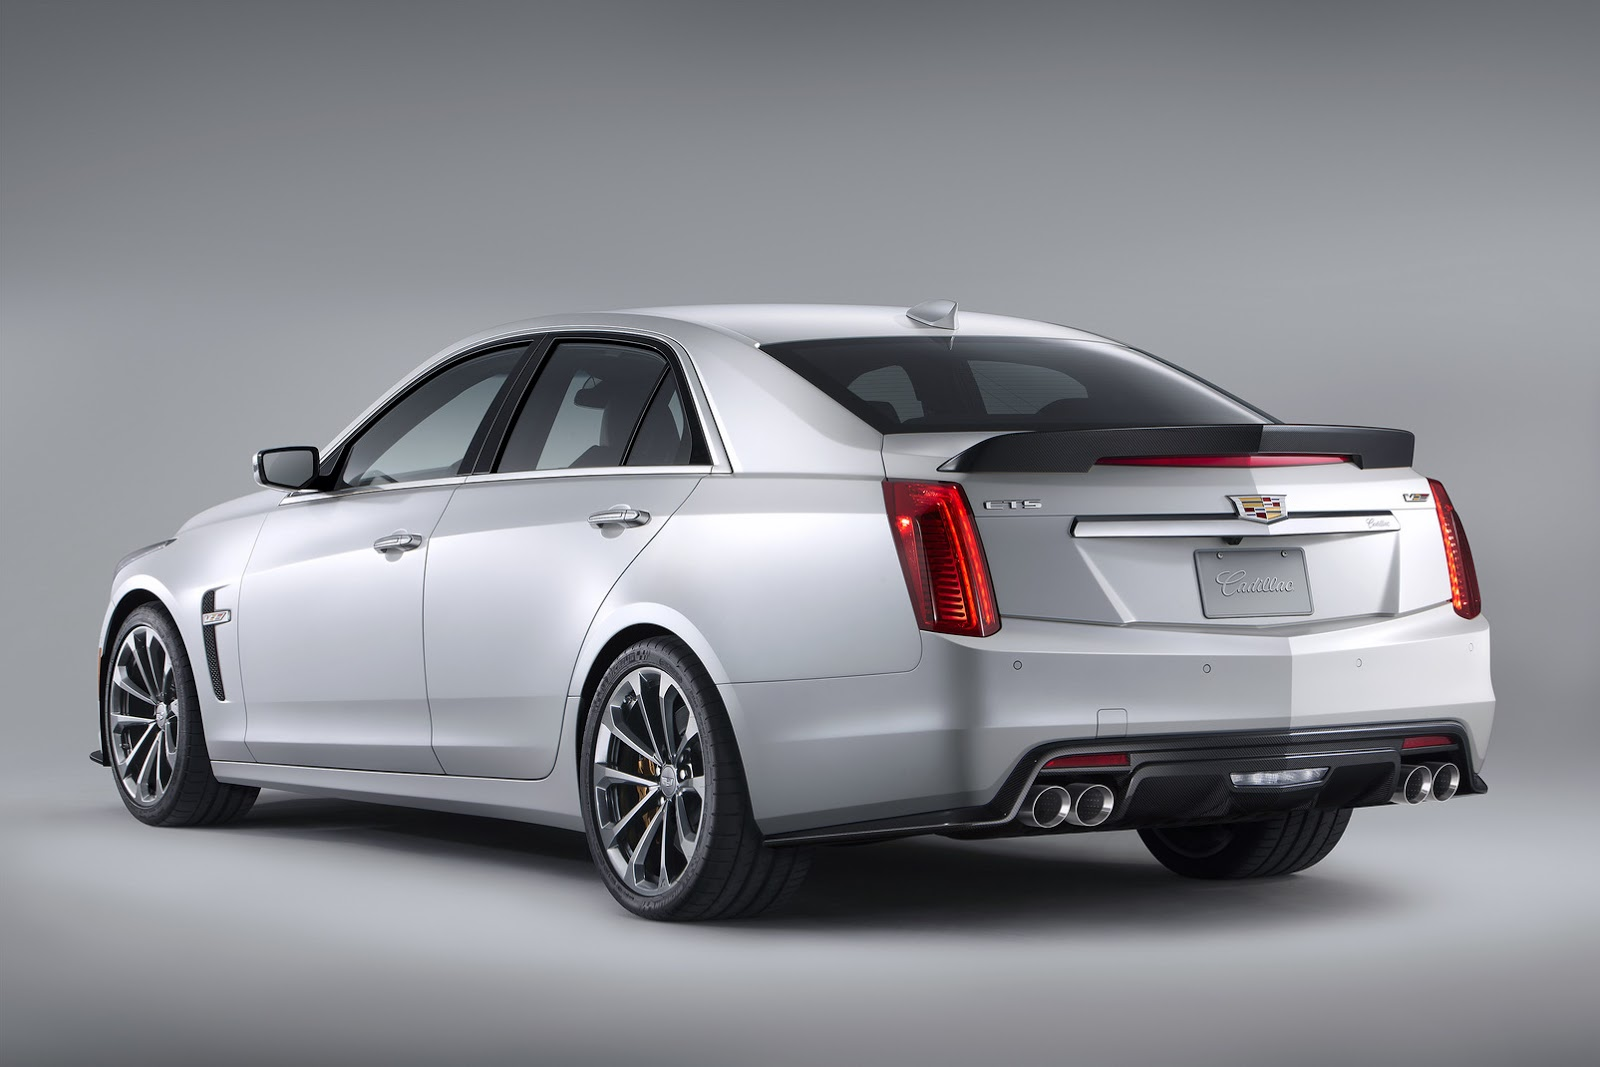 new 2016 cadillac cts v has 640hp supercharged v8 reaches 200mph carscoops. Black Bedroom Furniture Sets. Home Design Ideas